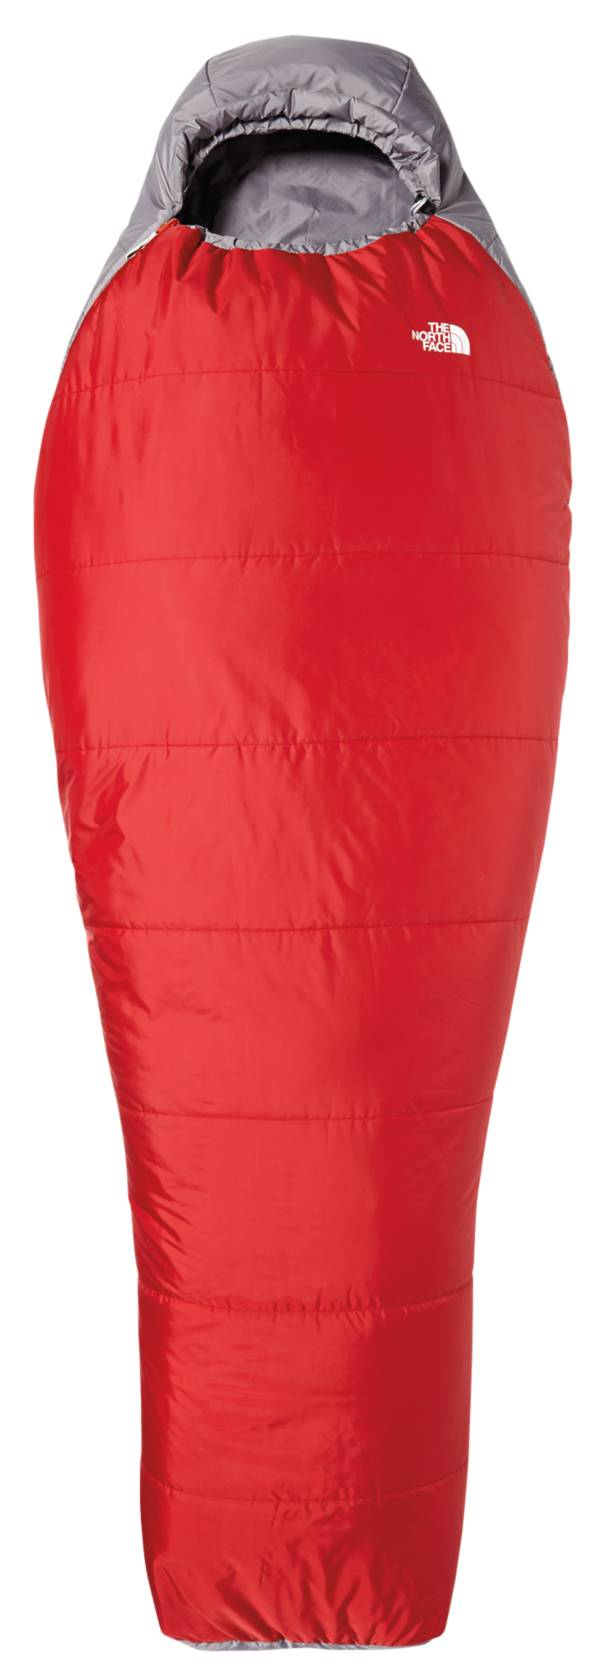 The North Face Wasatch 40° Sleeping Bag product image